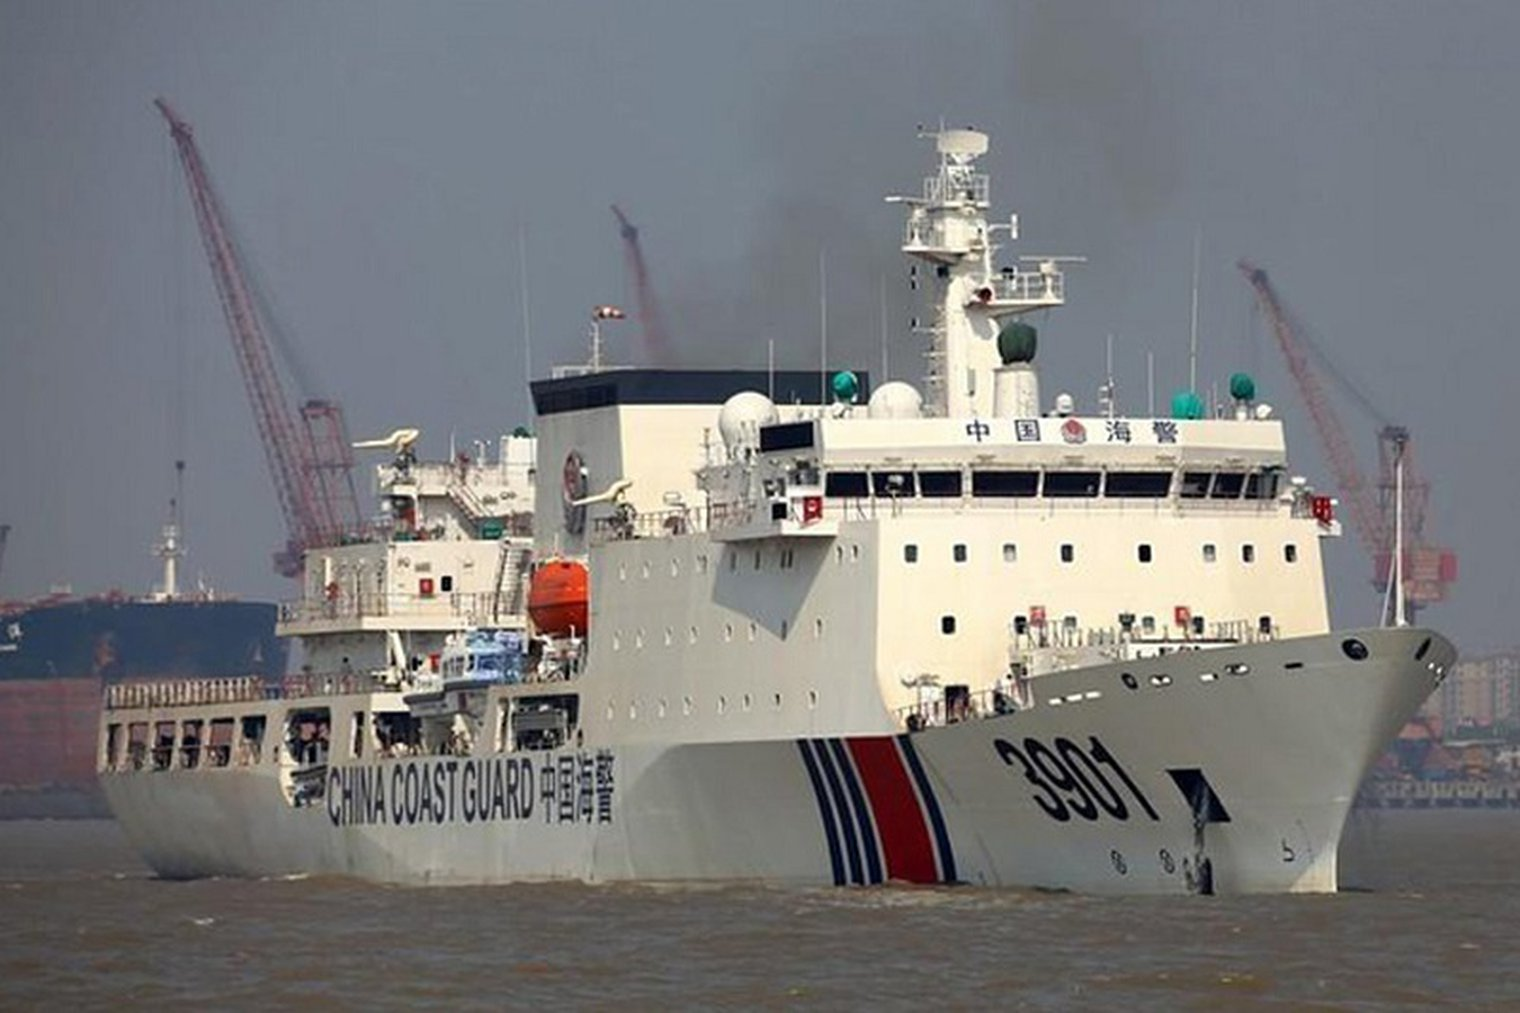 https://assets.shephardmedia.com/live/default/media/cache/images/images/article/China_coast_guard/5b26c8feed92ea73049d323ae3f943c9.jpg